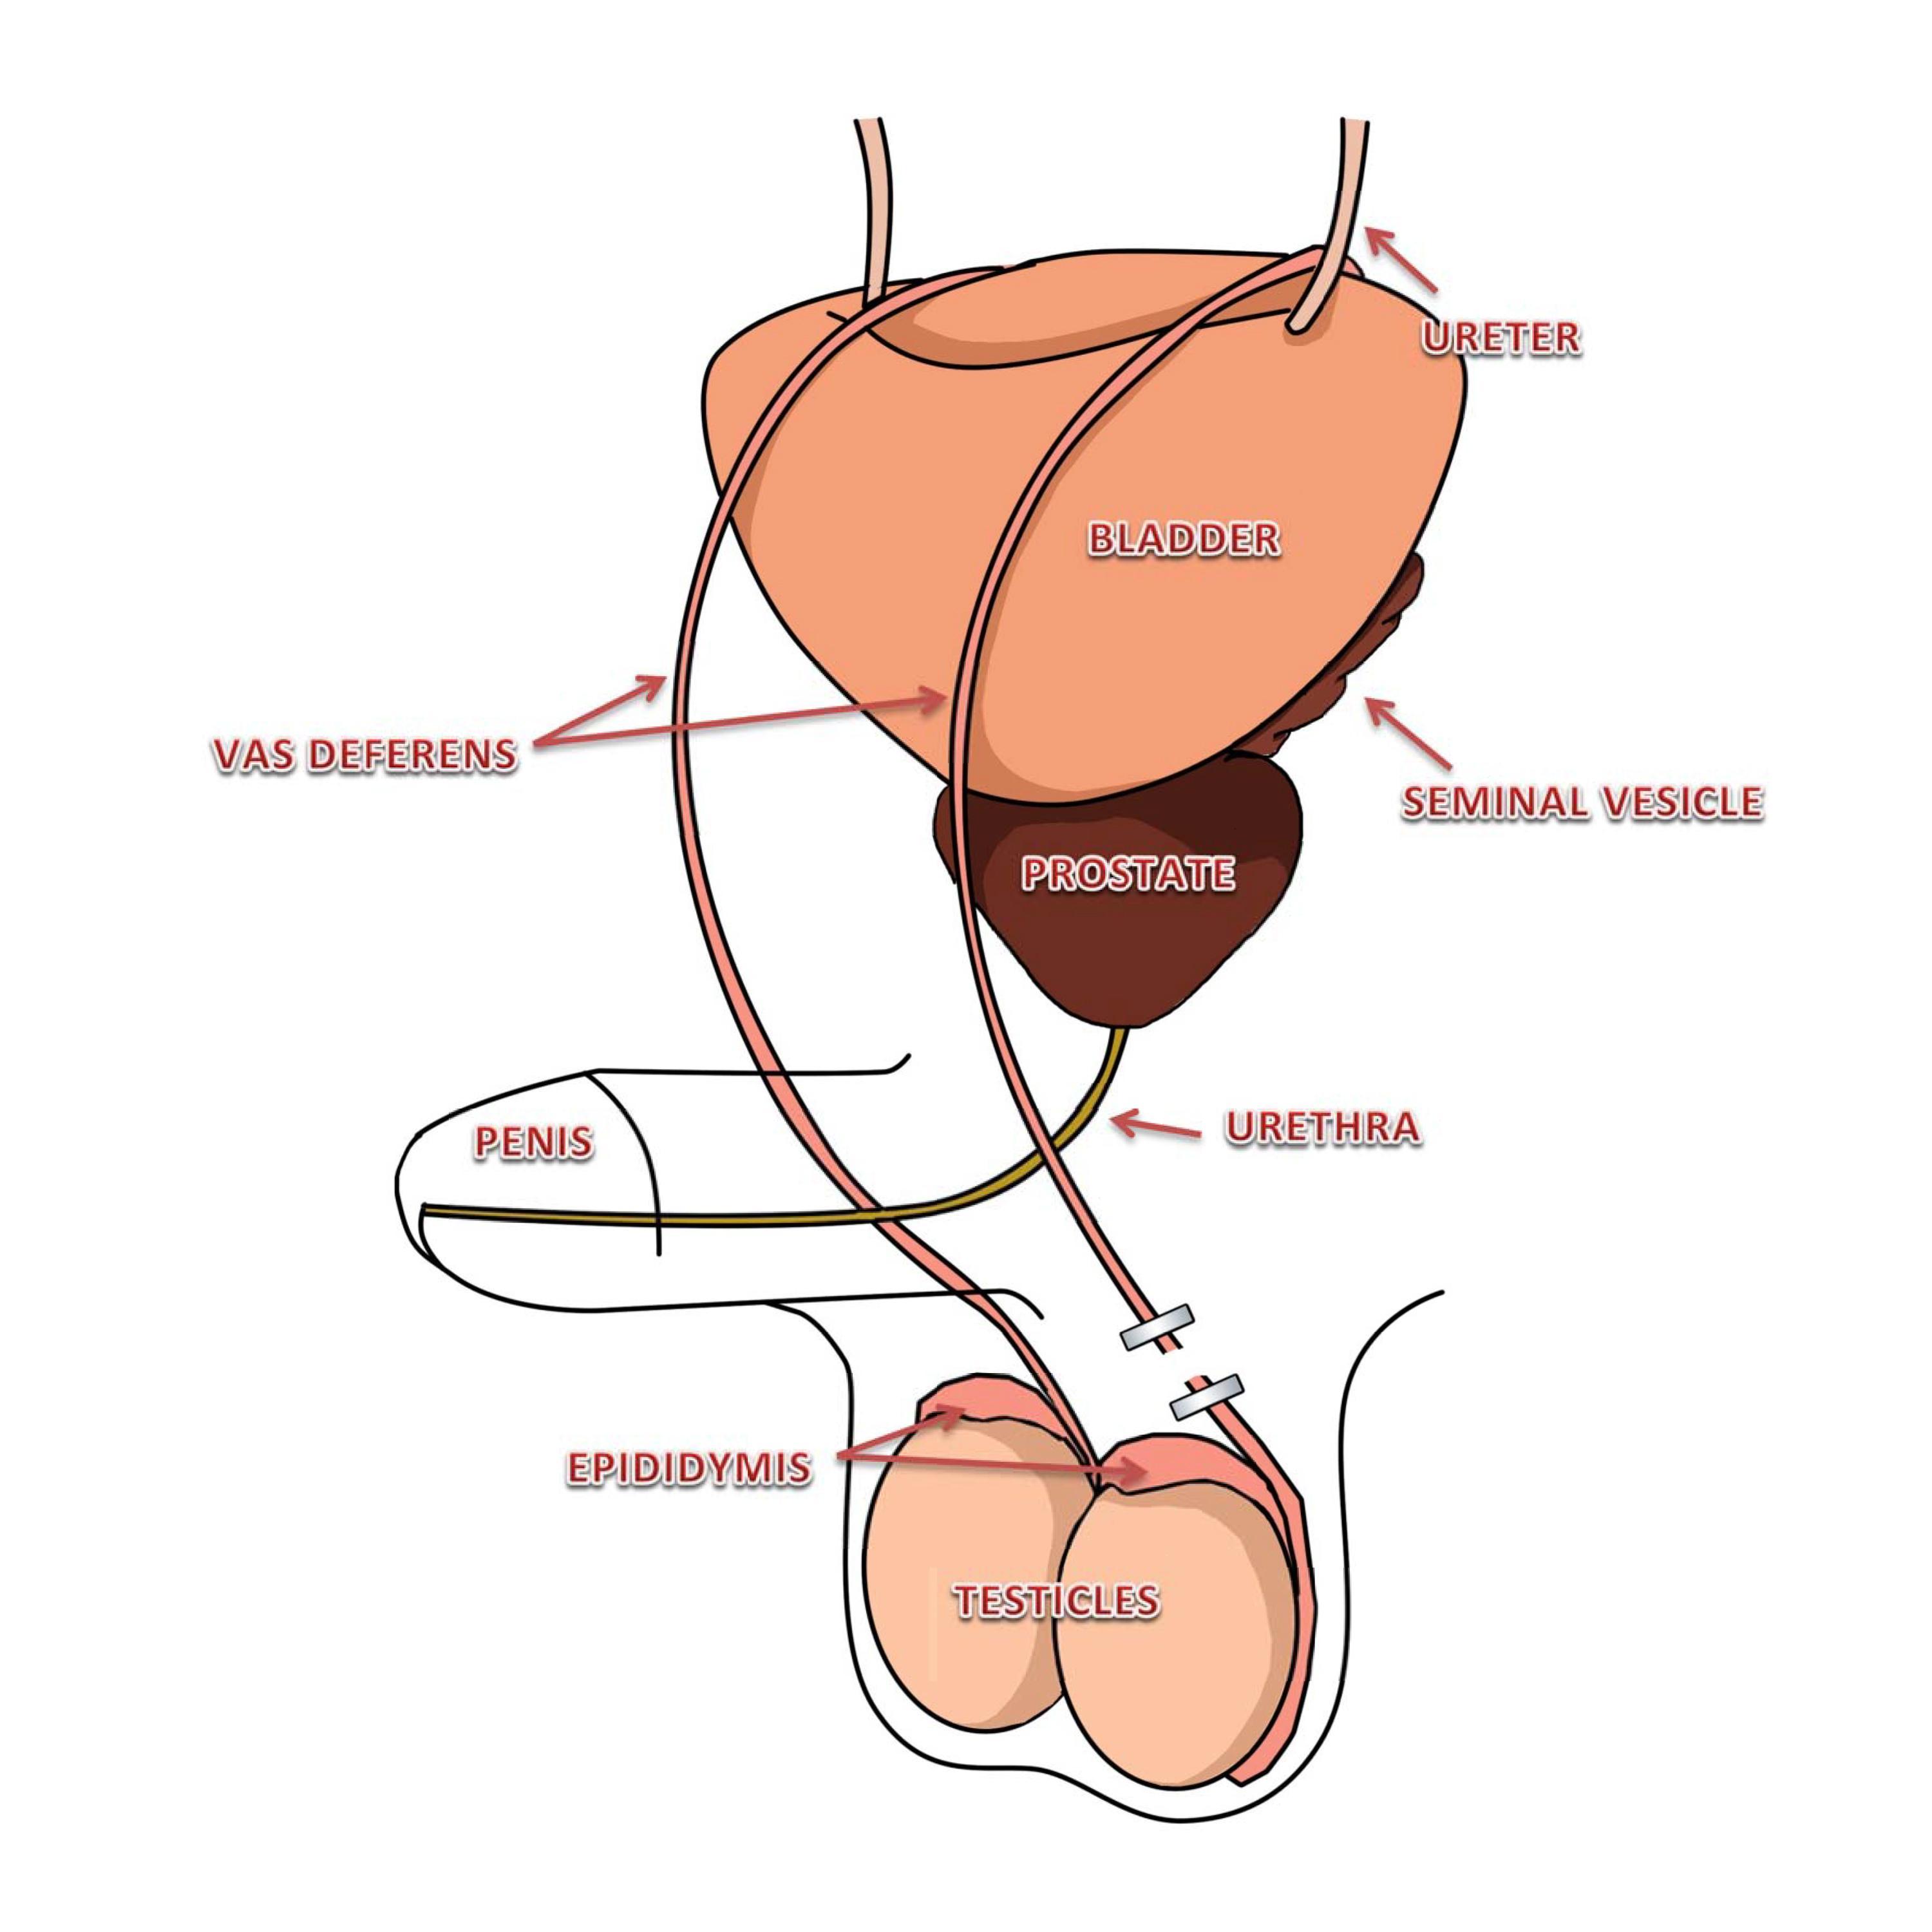 Vasectomy anatomy